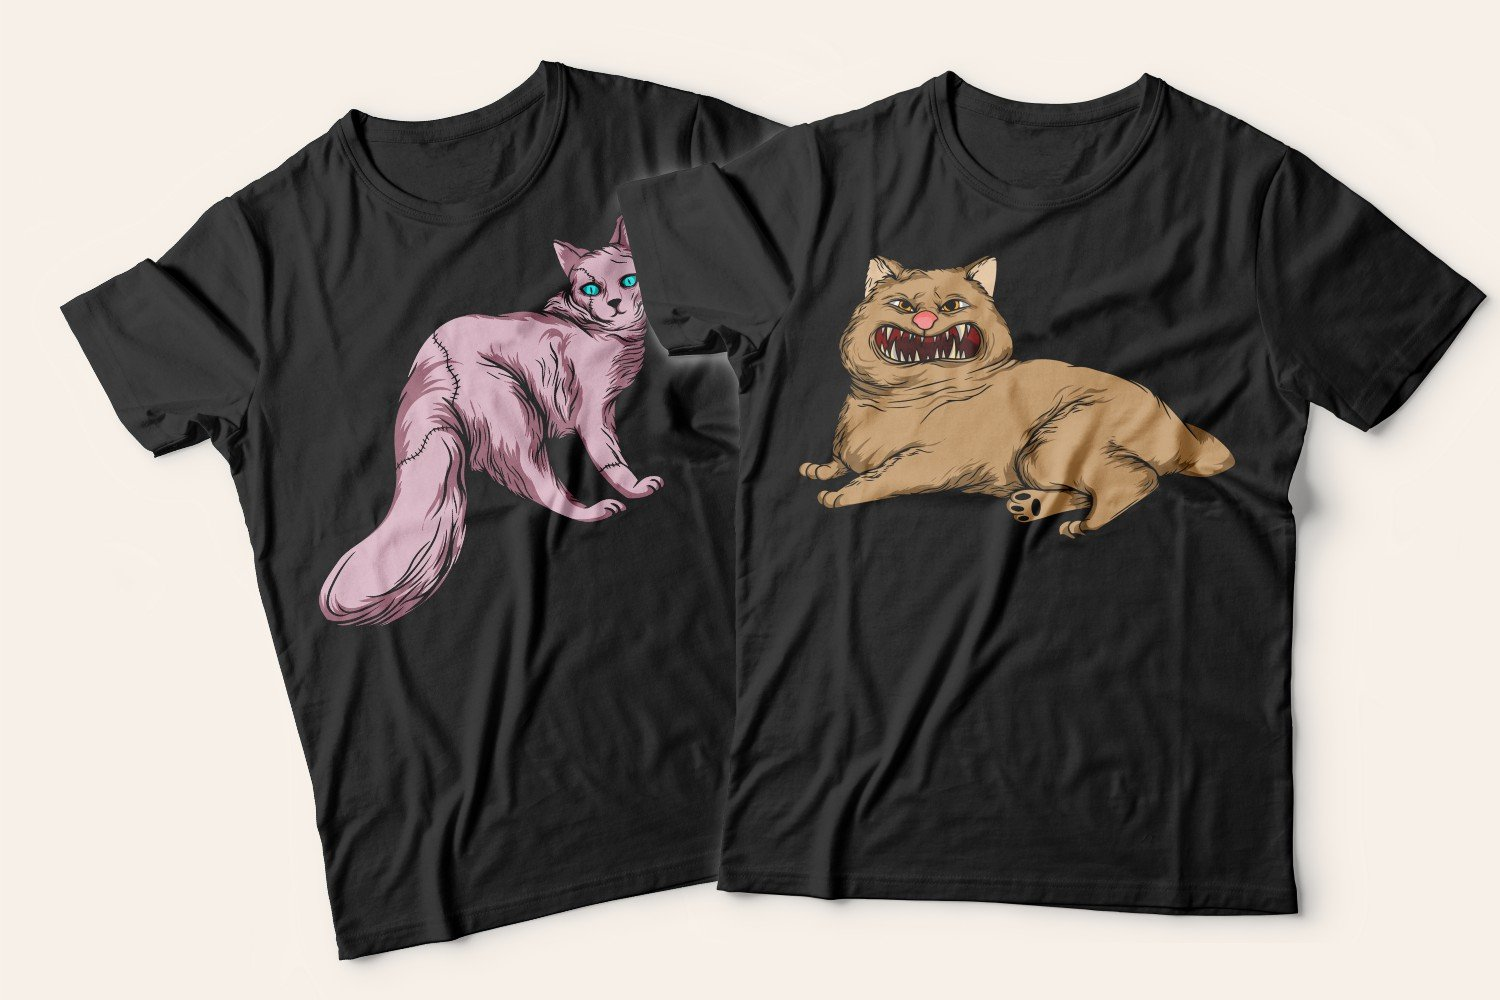 Two black T-shirts with cats: one with a flirty pink cat, the other with an angry beige fluffy cat.